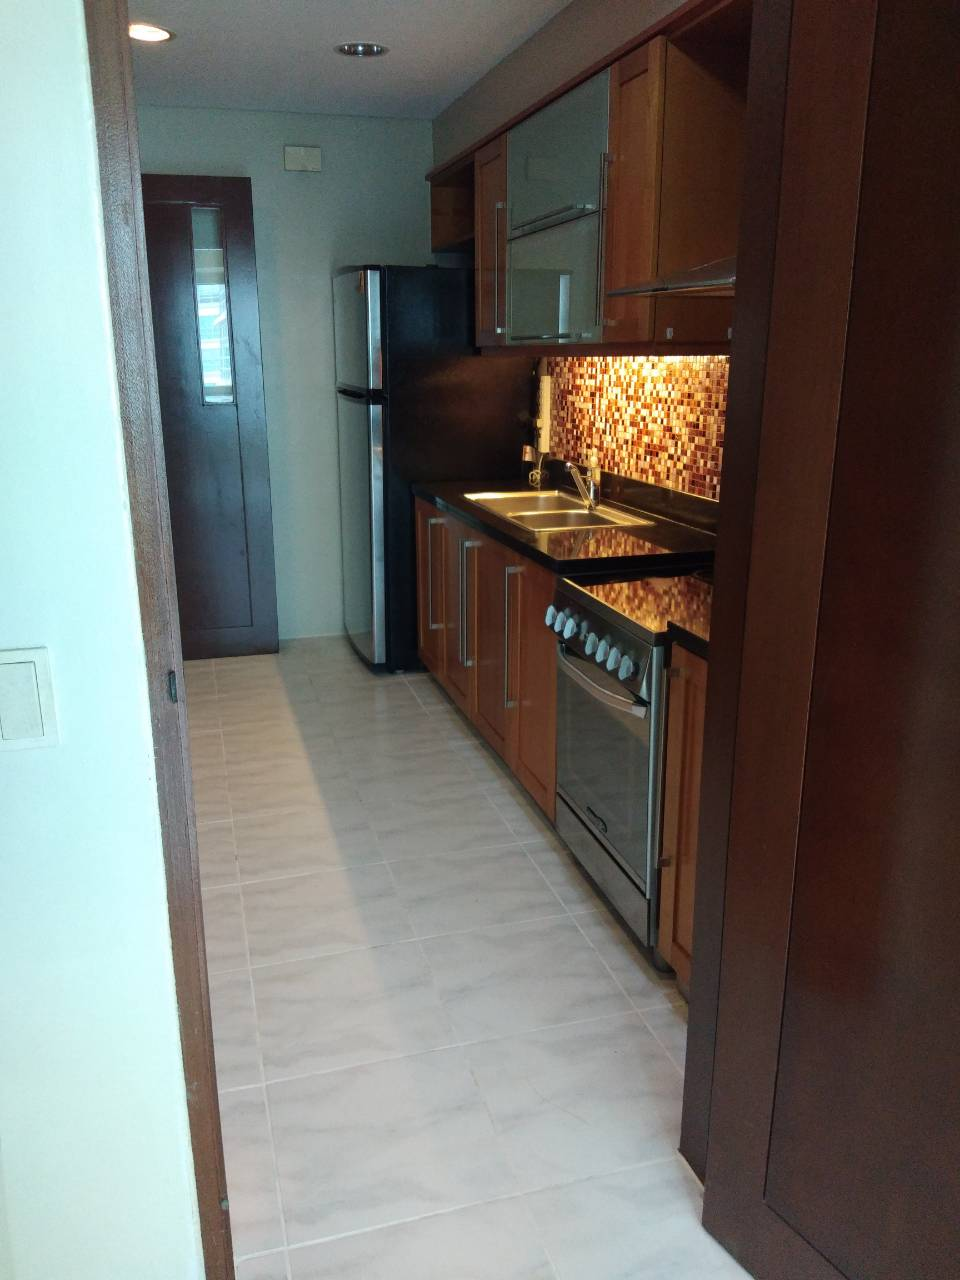 2 Bedrooms Condo For Rent, The Residences At Greenbelt Kitchen View 2